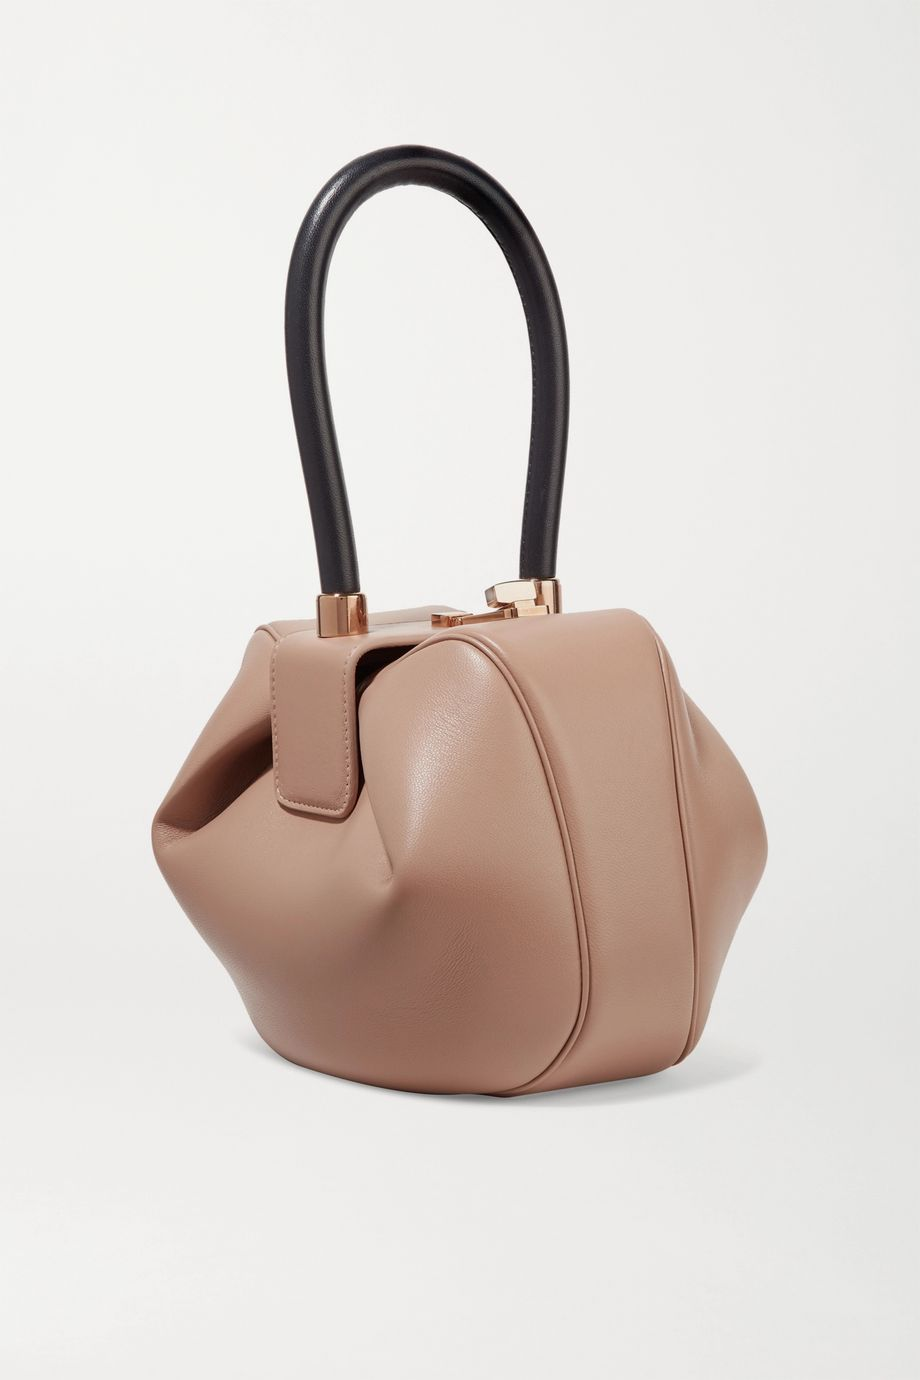 Gabriela Hearst Nina two-tone leather tote